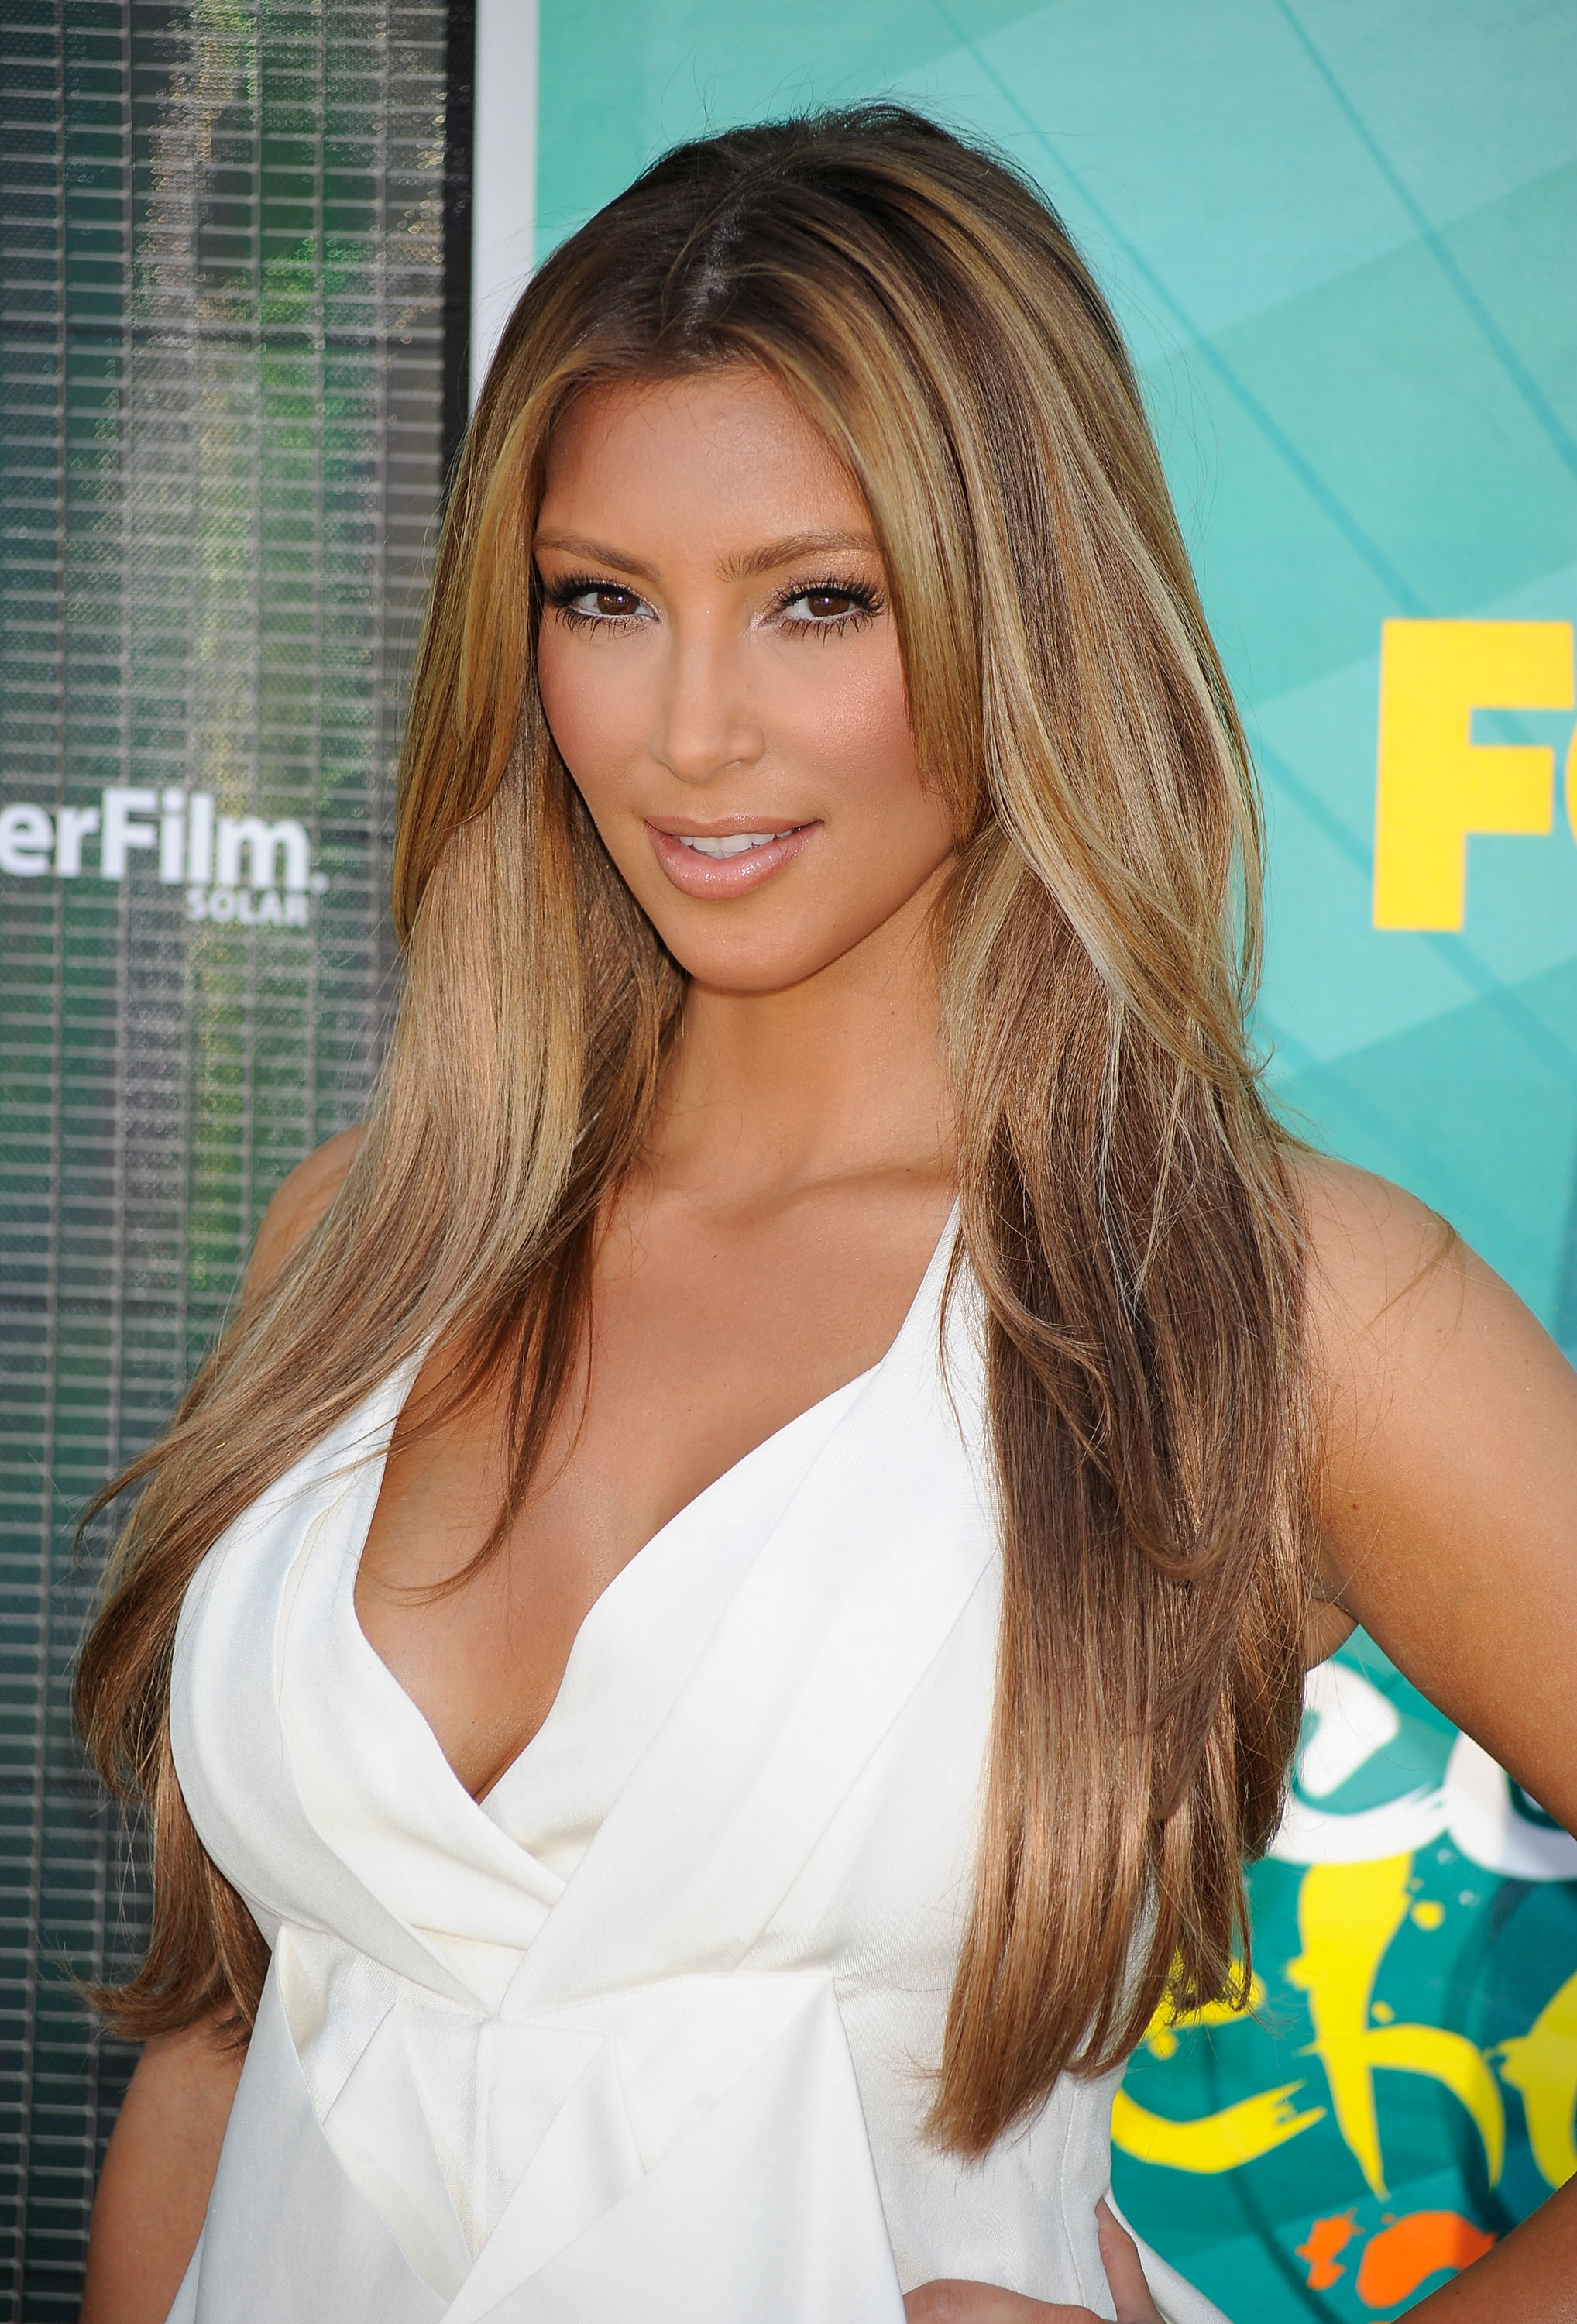 Photos Of Blonde Kim Kardashian On The Red Carpet At The Teen Choice ...